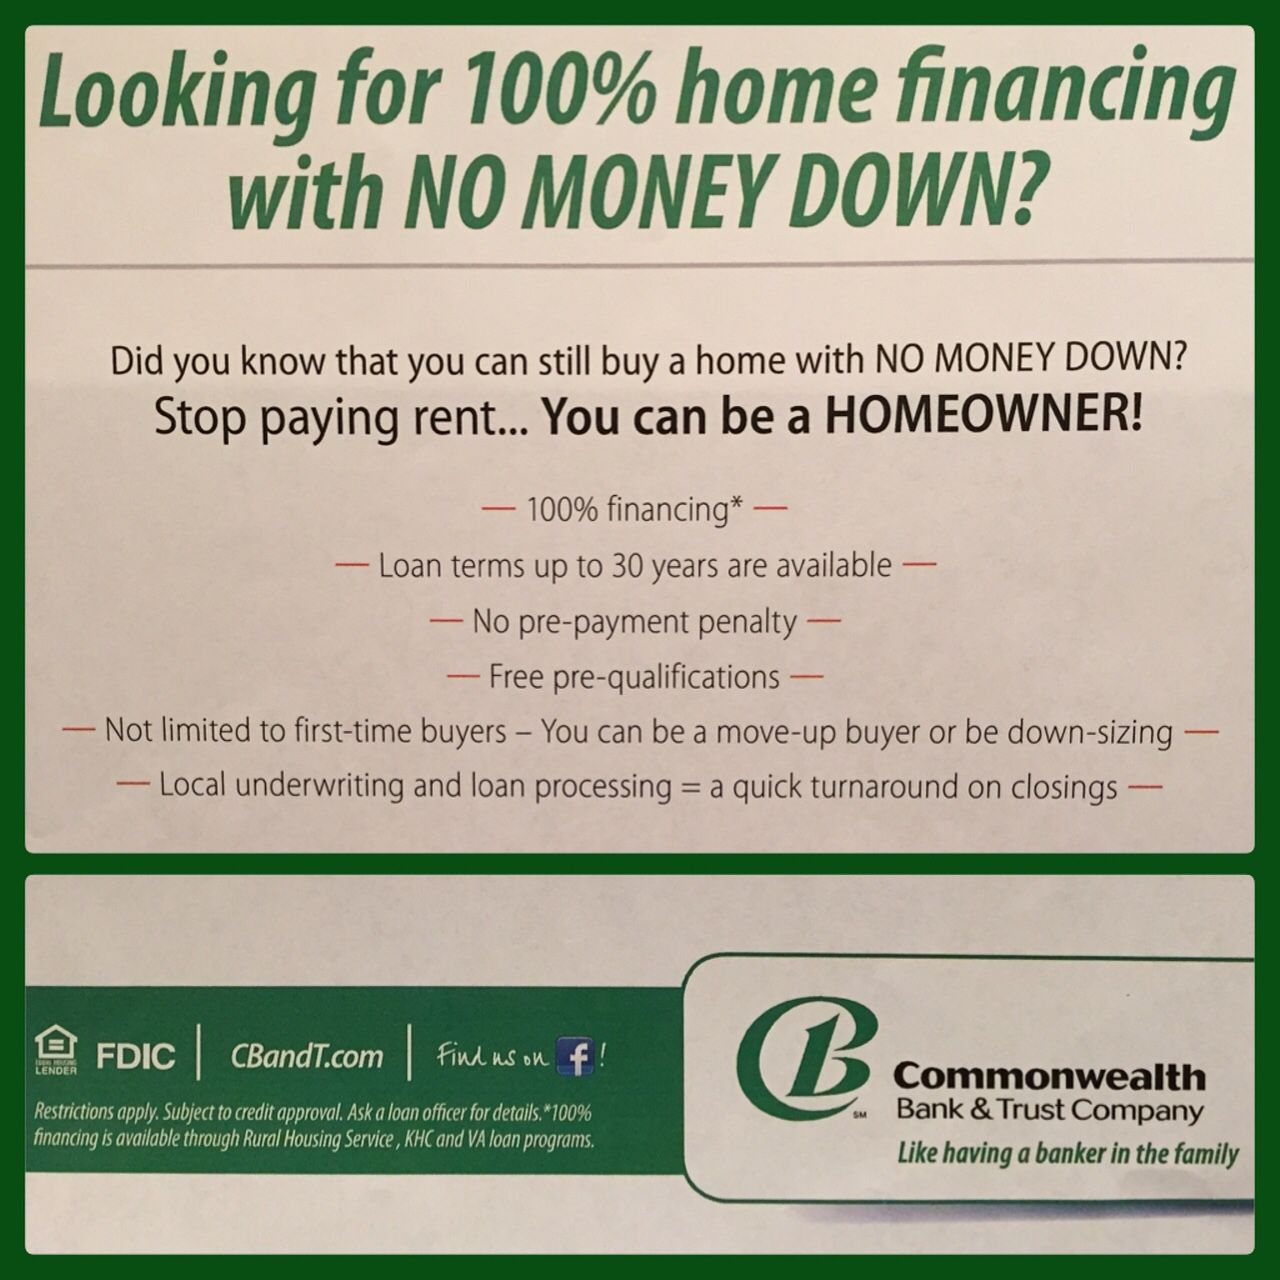 Mortgage Directory Mortgage Commonwealth Bank Trust Finance Loans Banking Services Commonwealth Bank